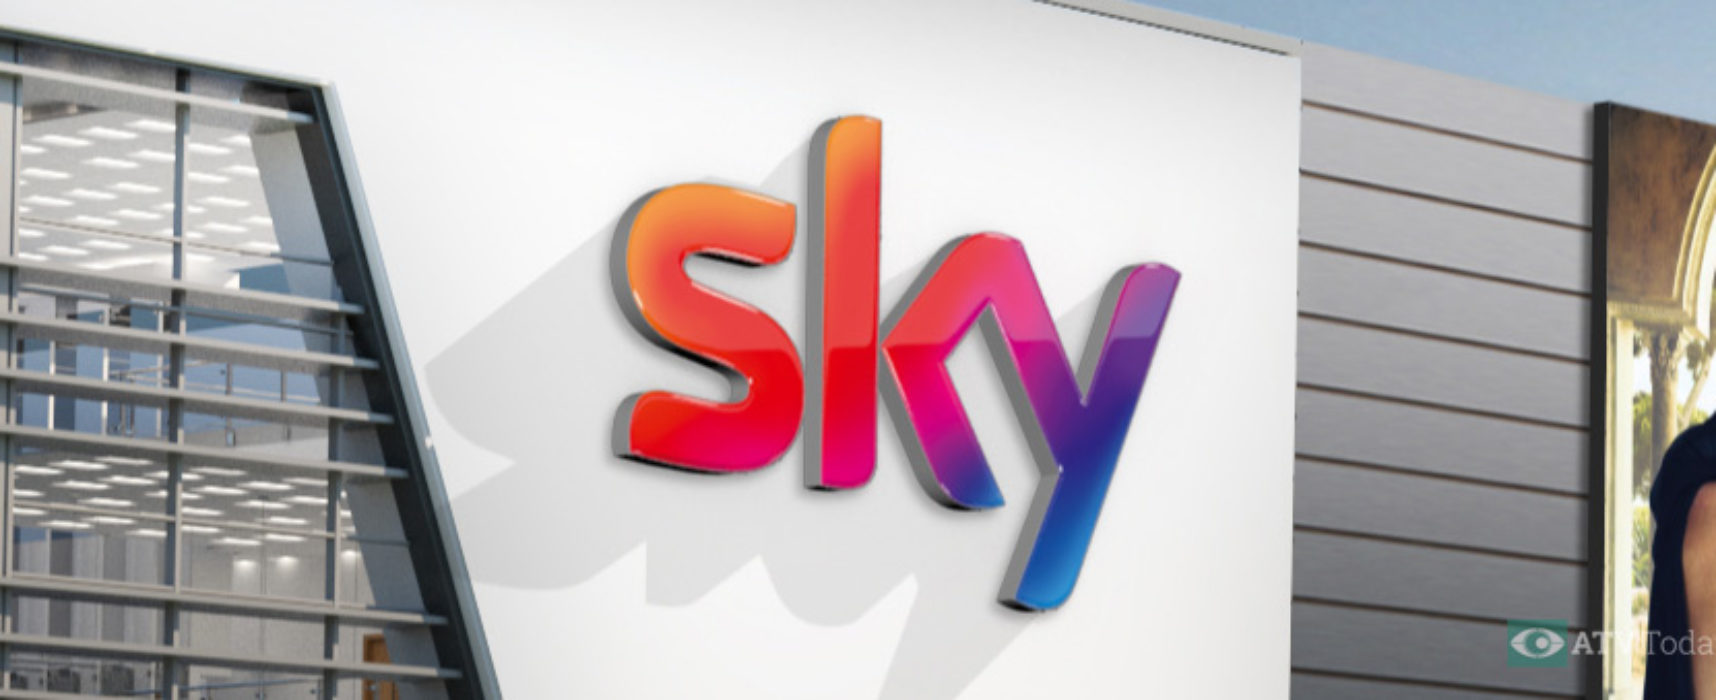 Sky and Channel 5 boost content partnership